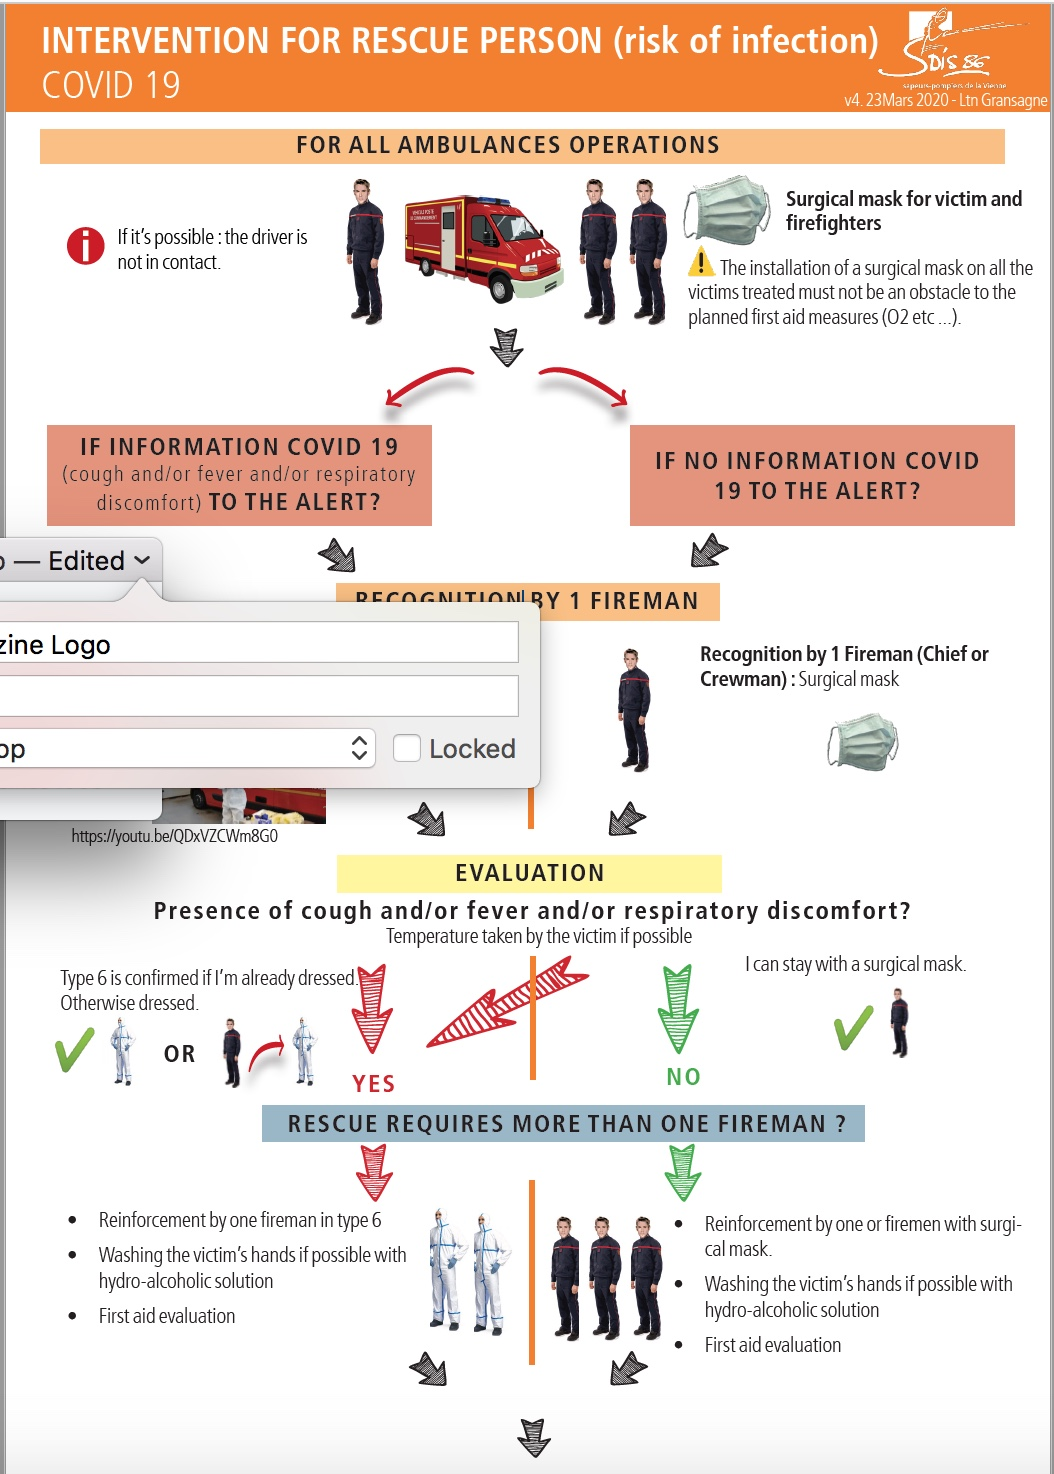 French Covid-19 ambulance protocol